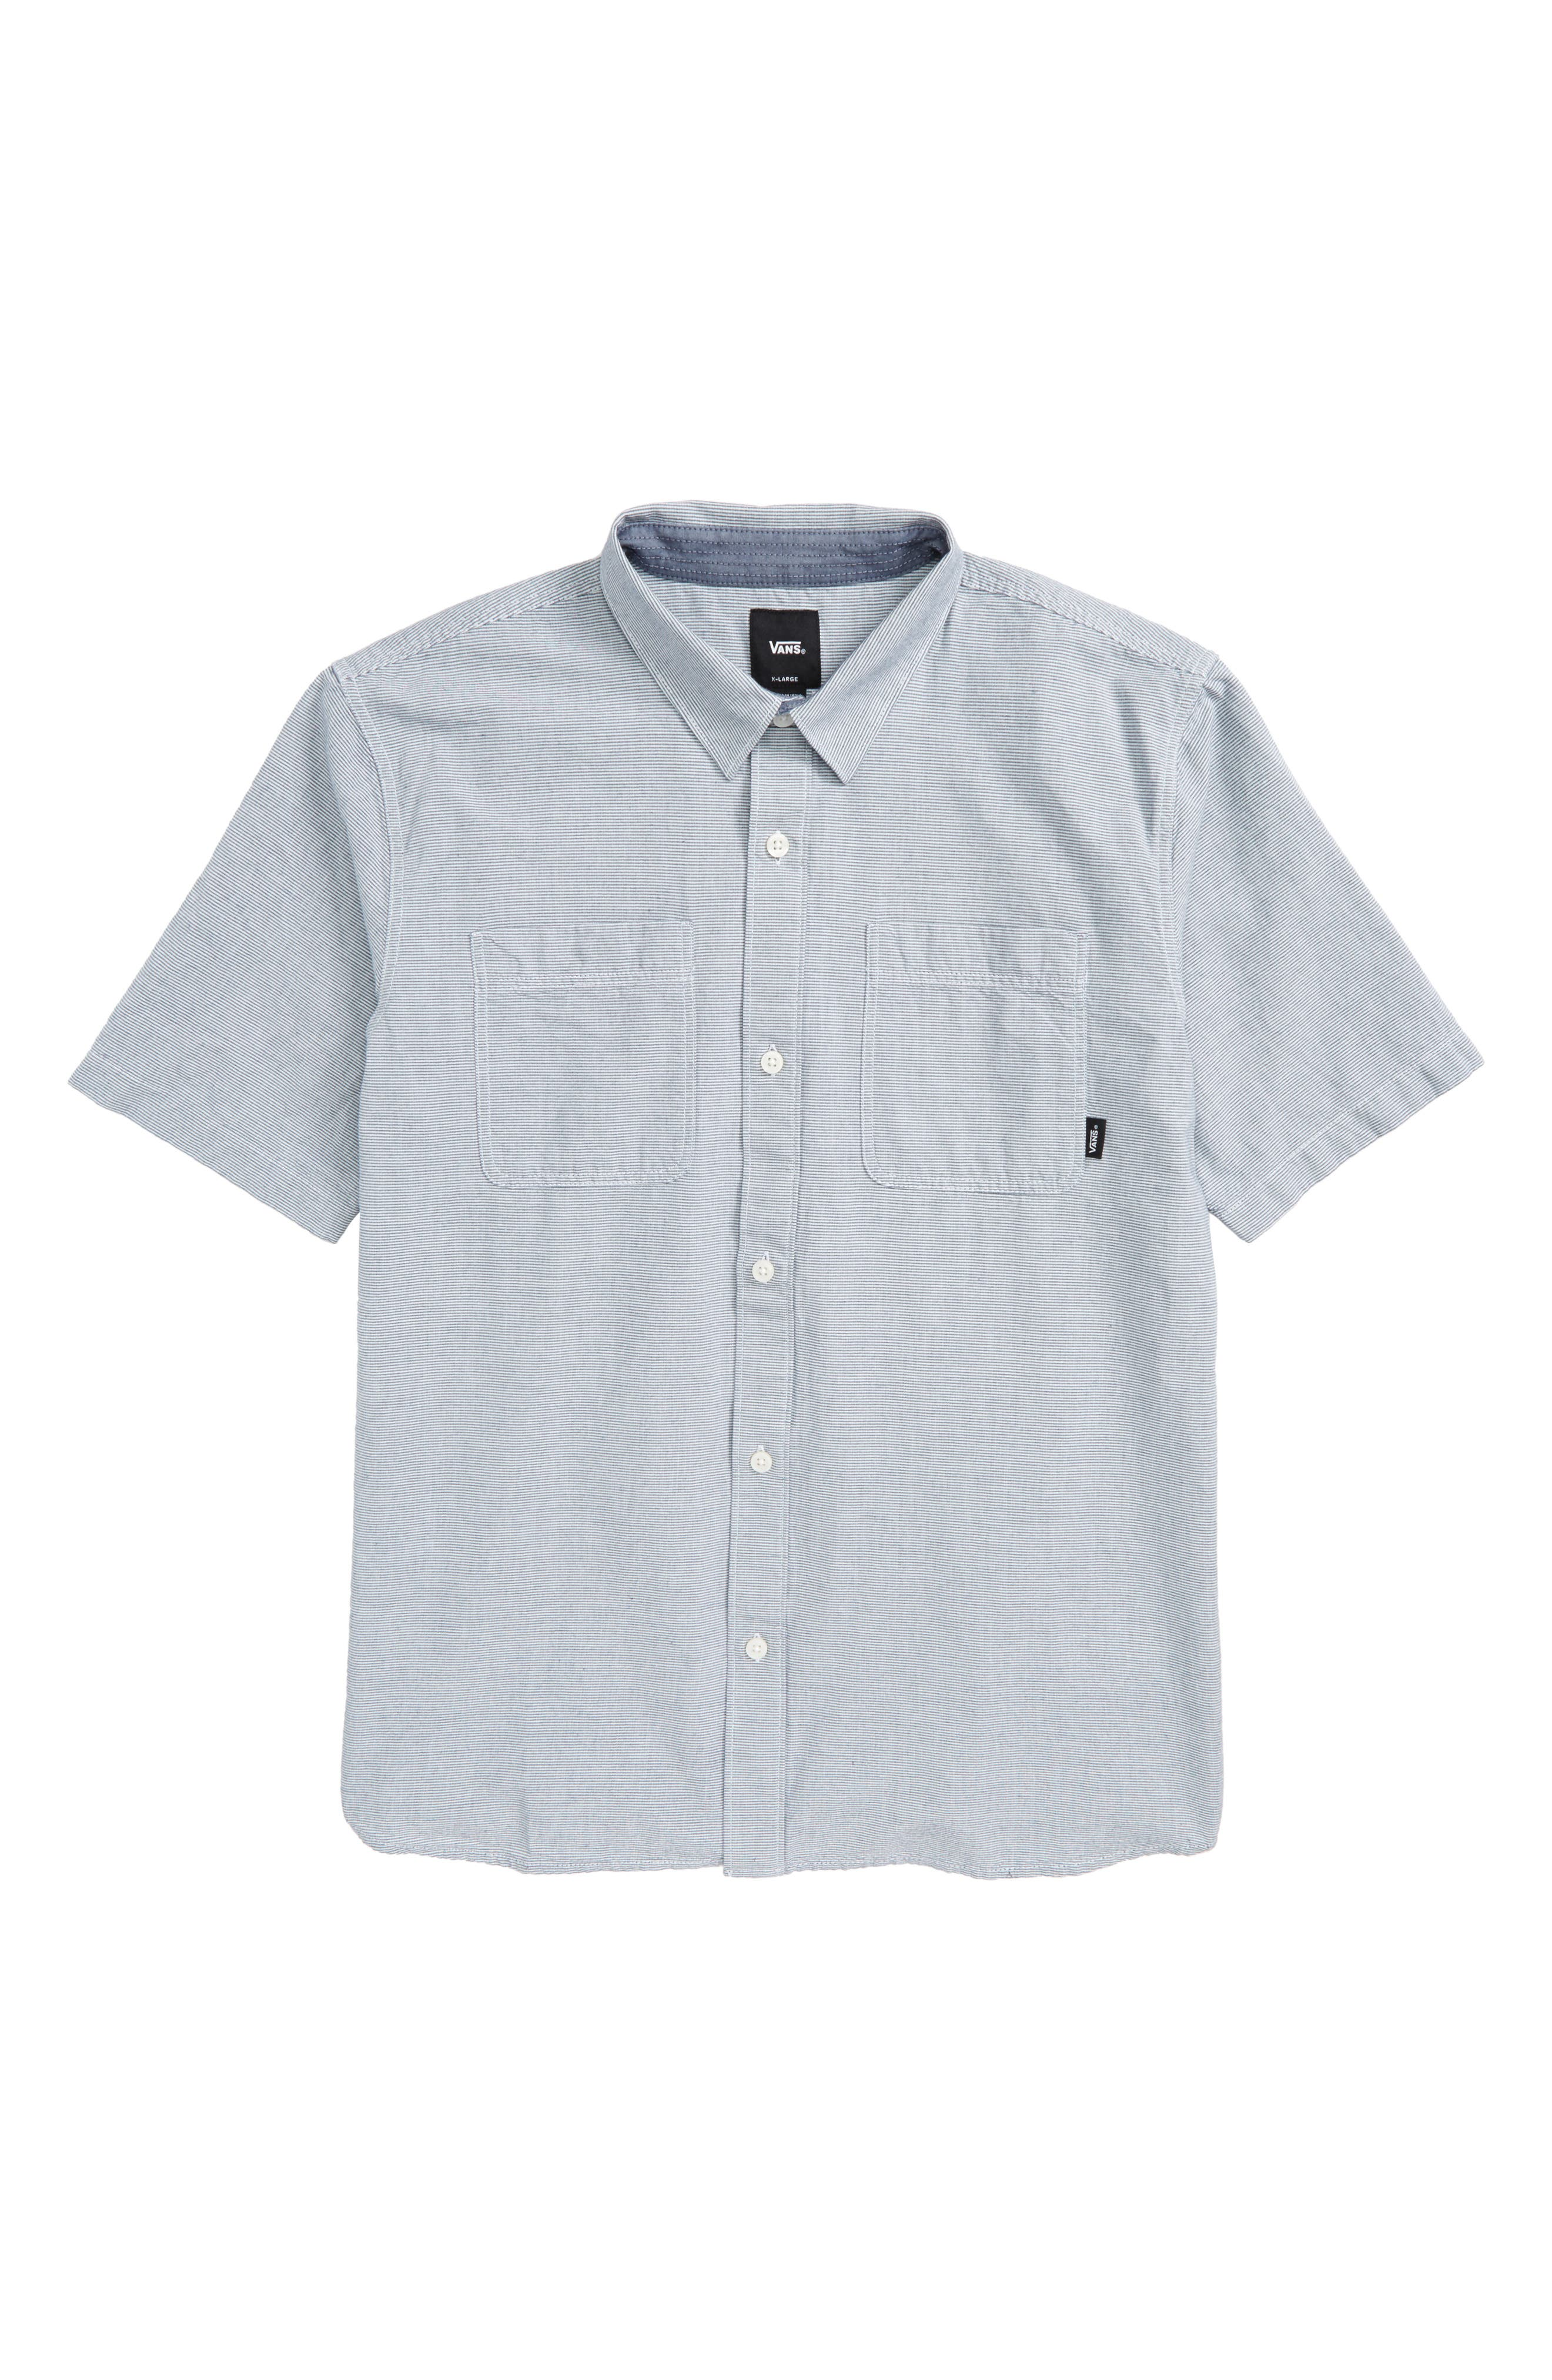 Wexford Woven Shirt,                         Main,                         color, 401